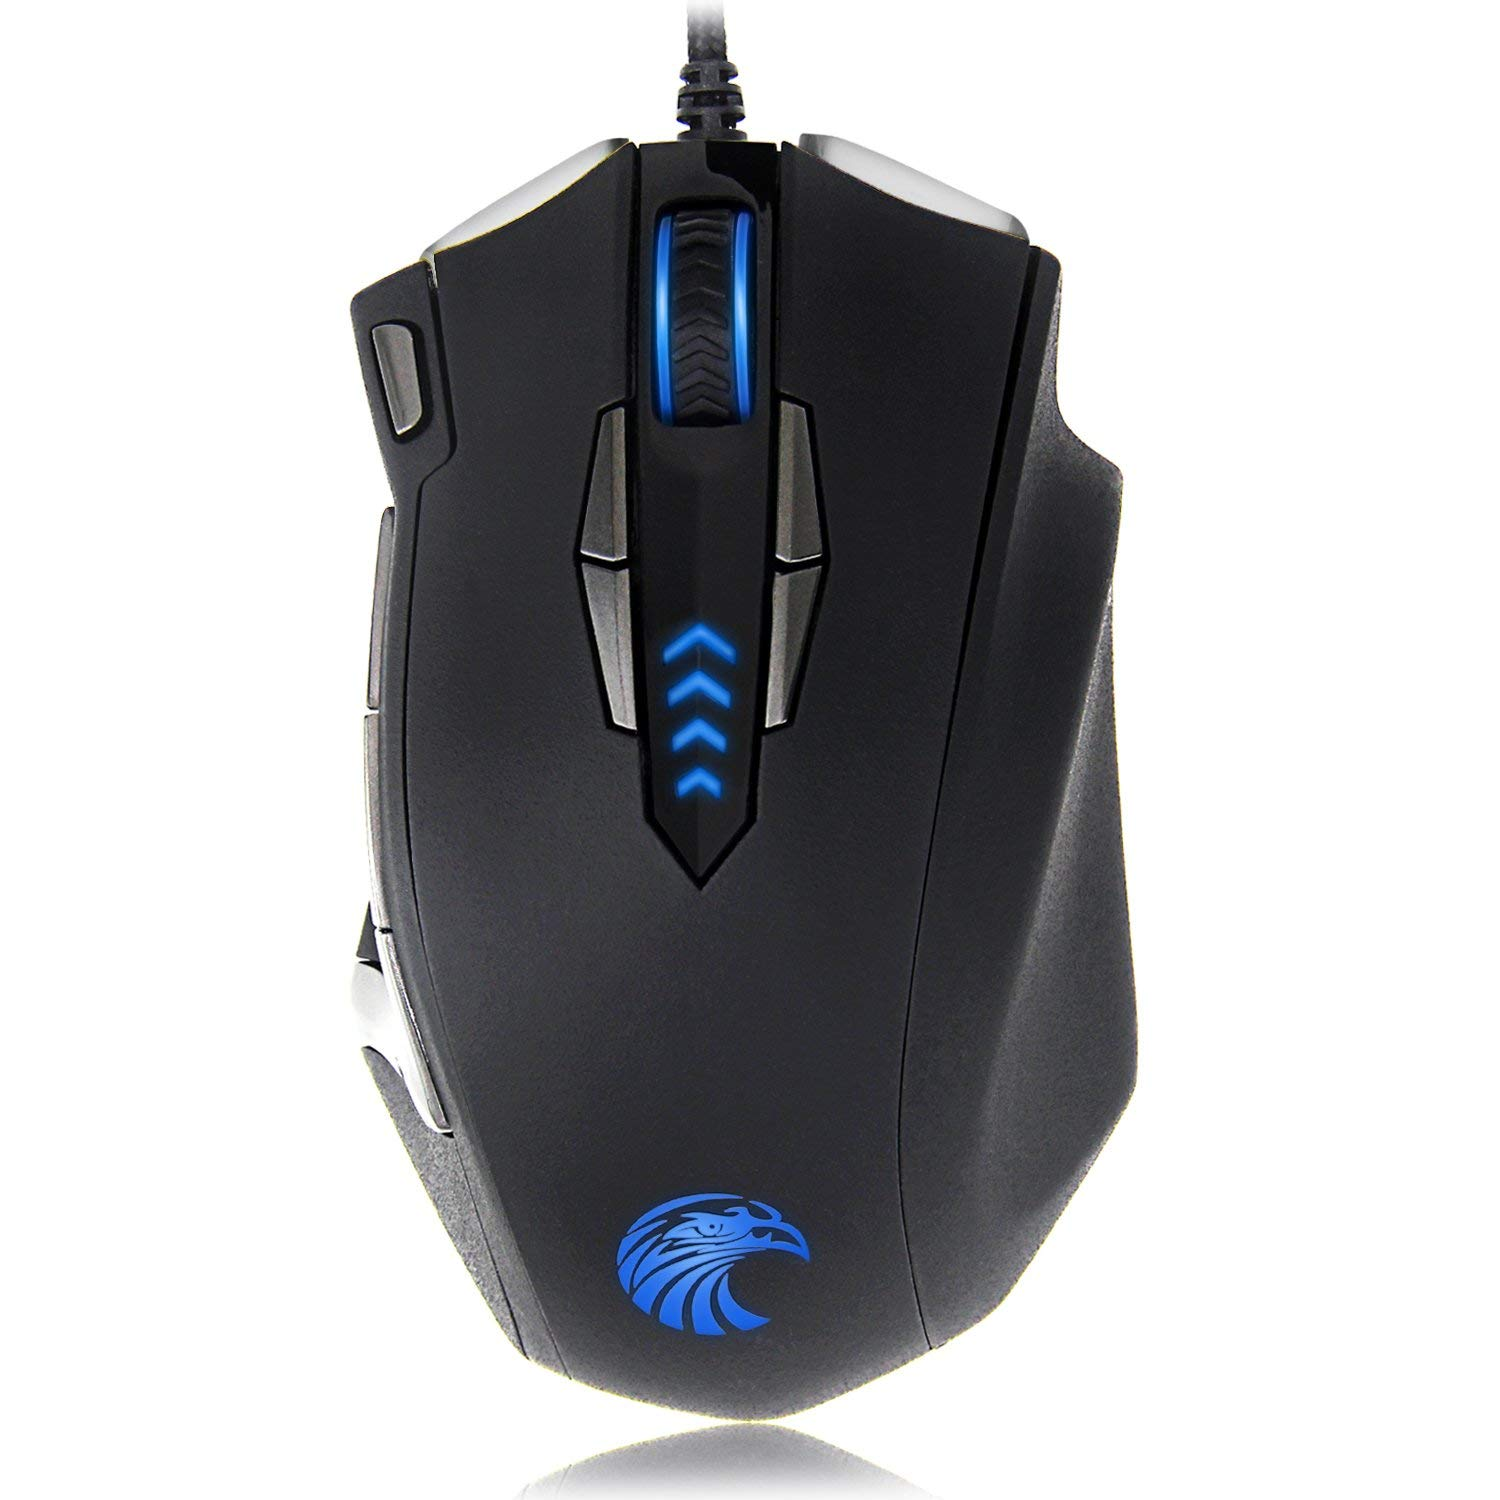 Z-7900 Gaming Mouse Wired, 13 Programmable Buttons 8 5 Side Buttons , RGB Backlit, Marco, 10000 DPI Adjustable, Comfortable Grip Ergonomic Optical Gaming Mice with Tunable Weights, Black